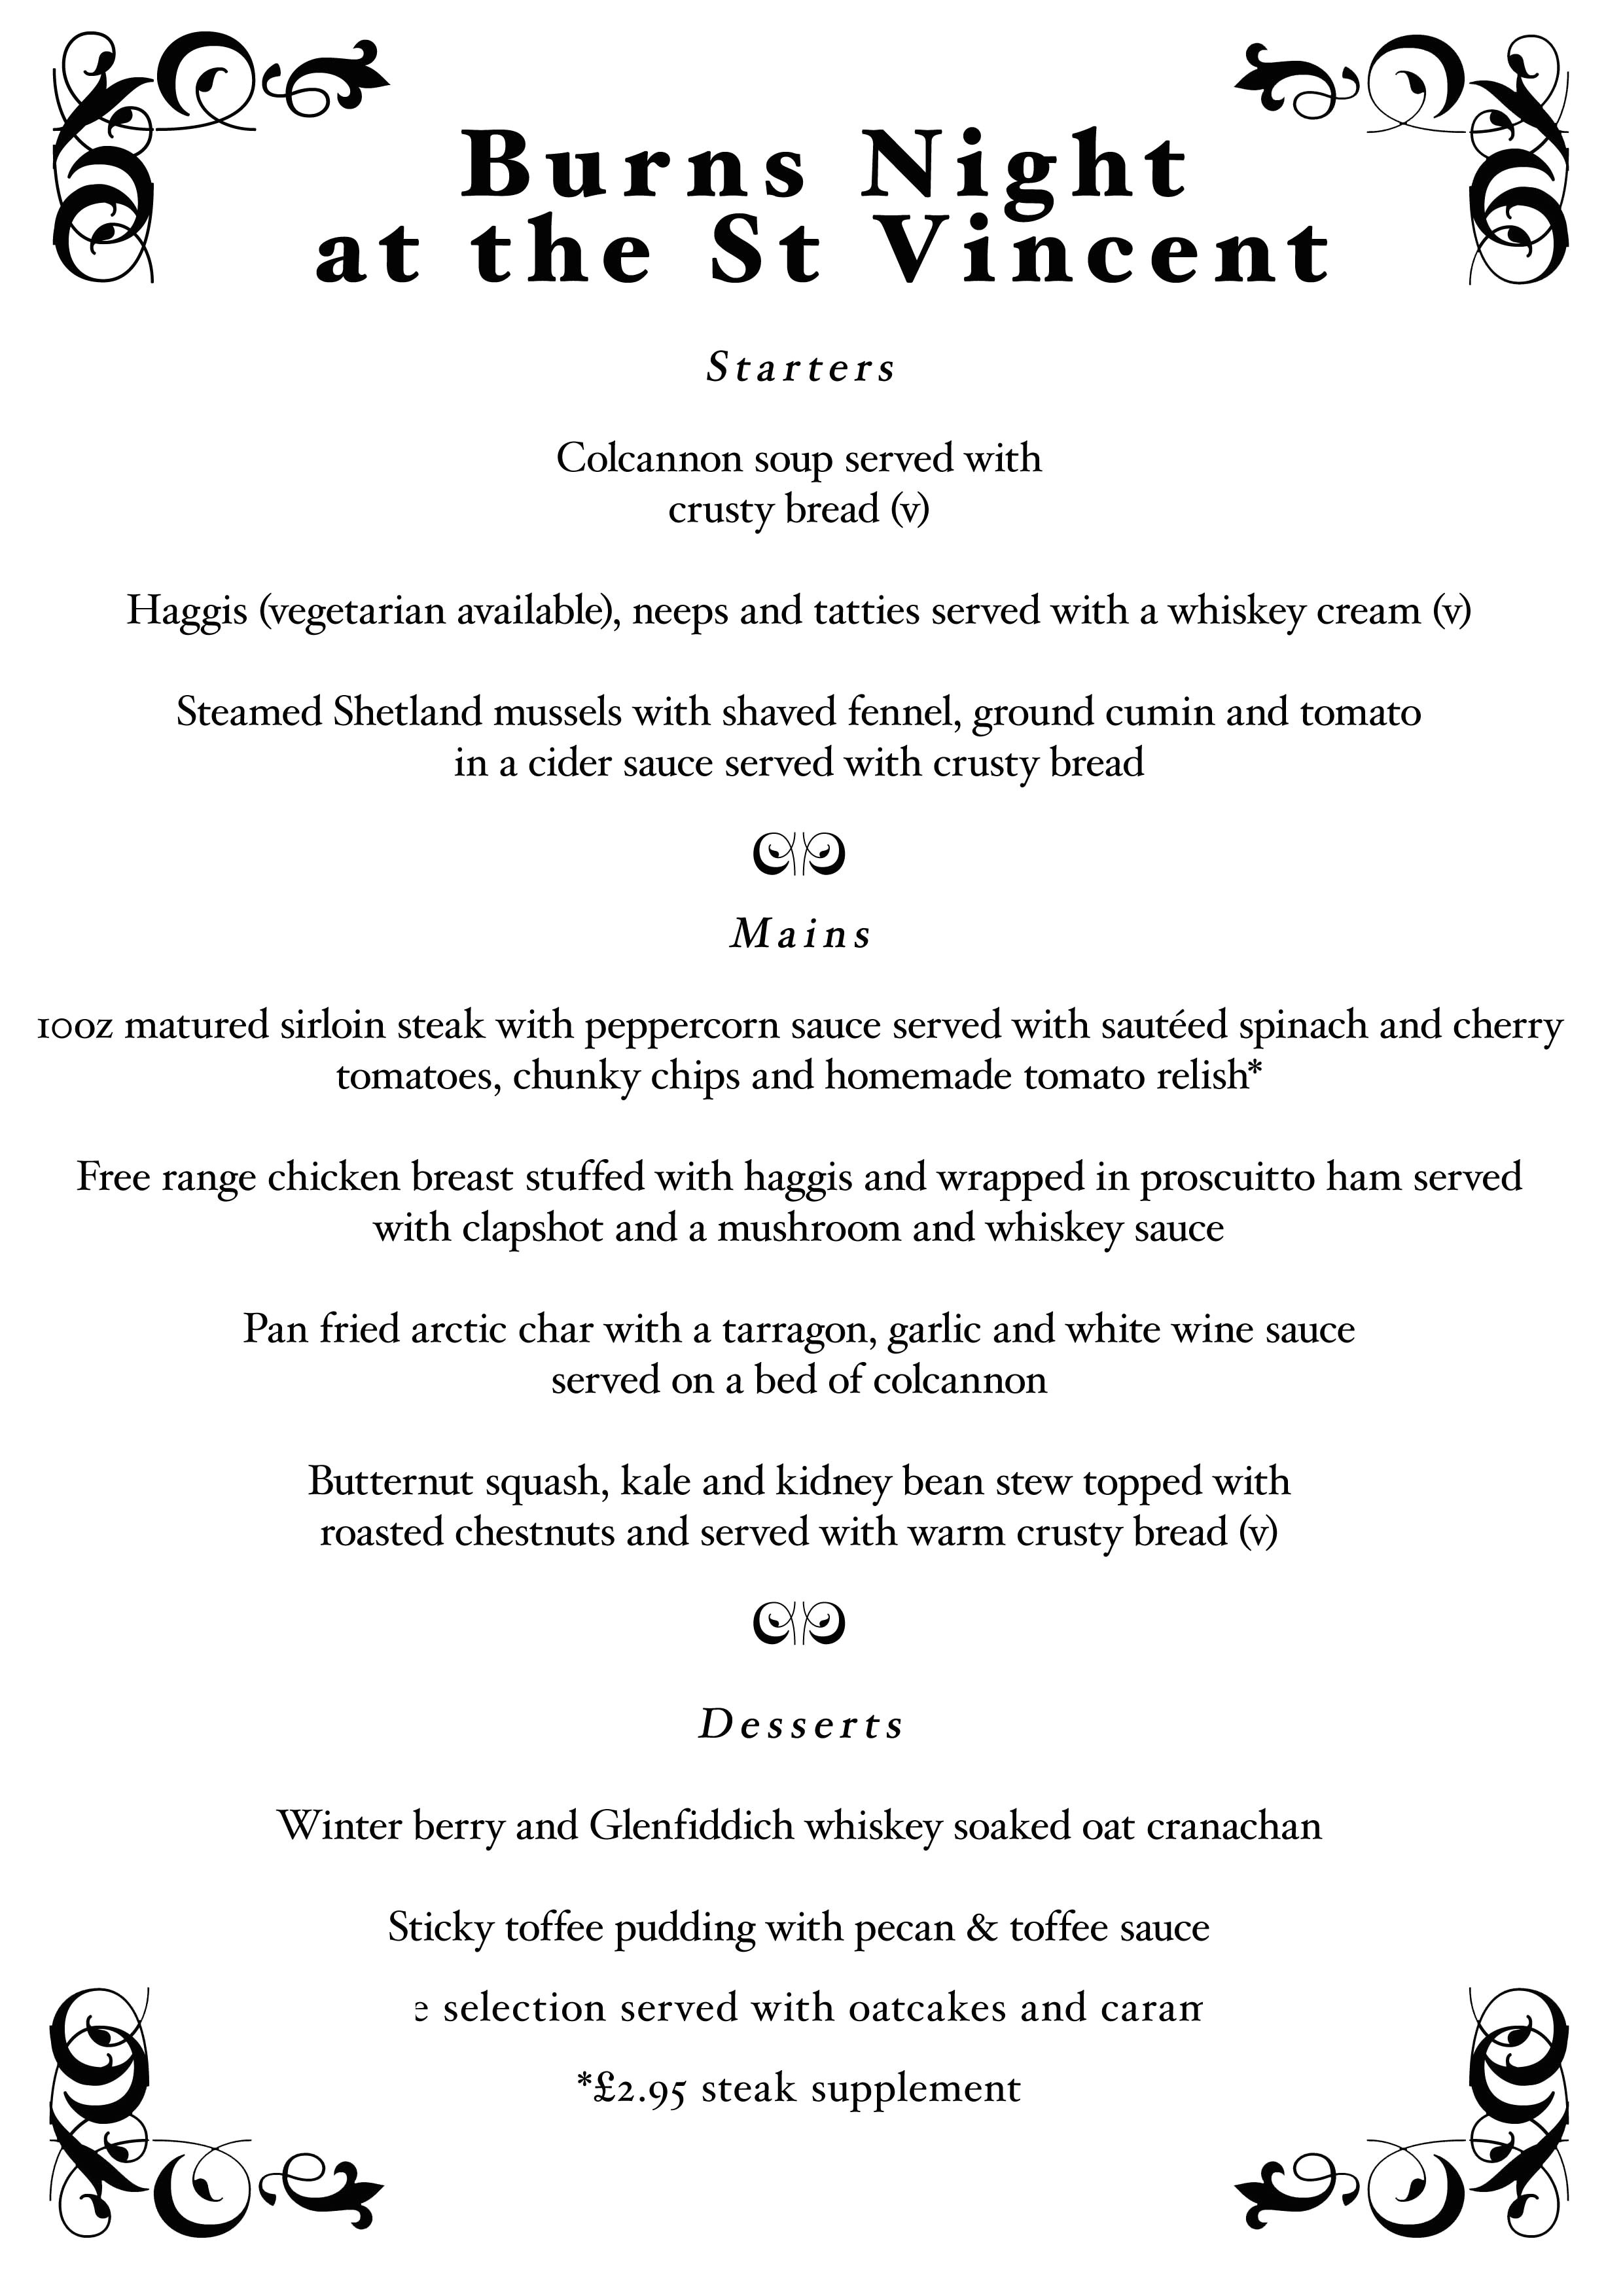 burns night 2011 menu